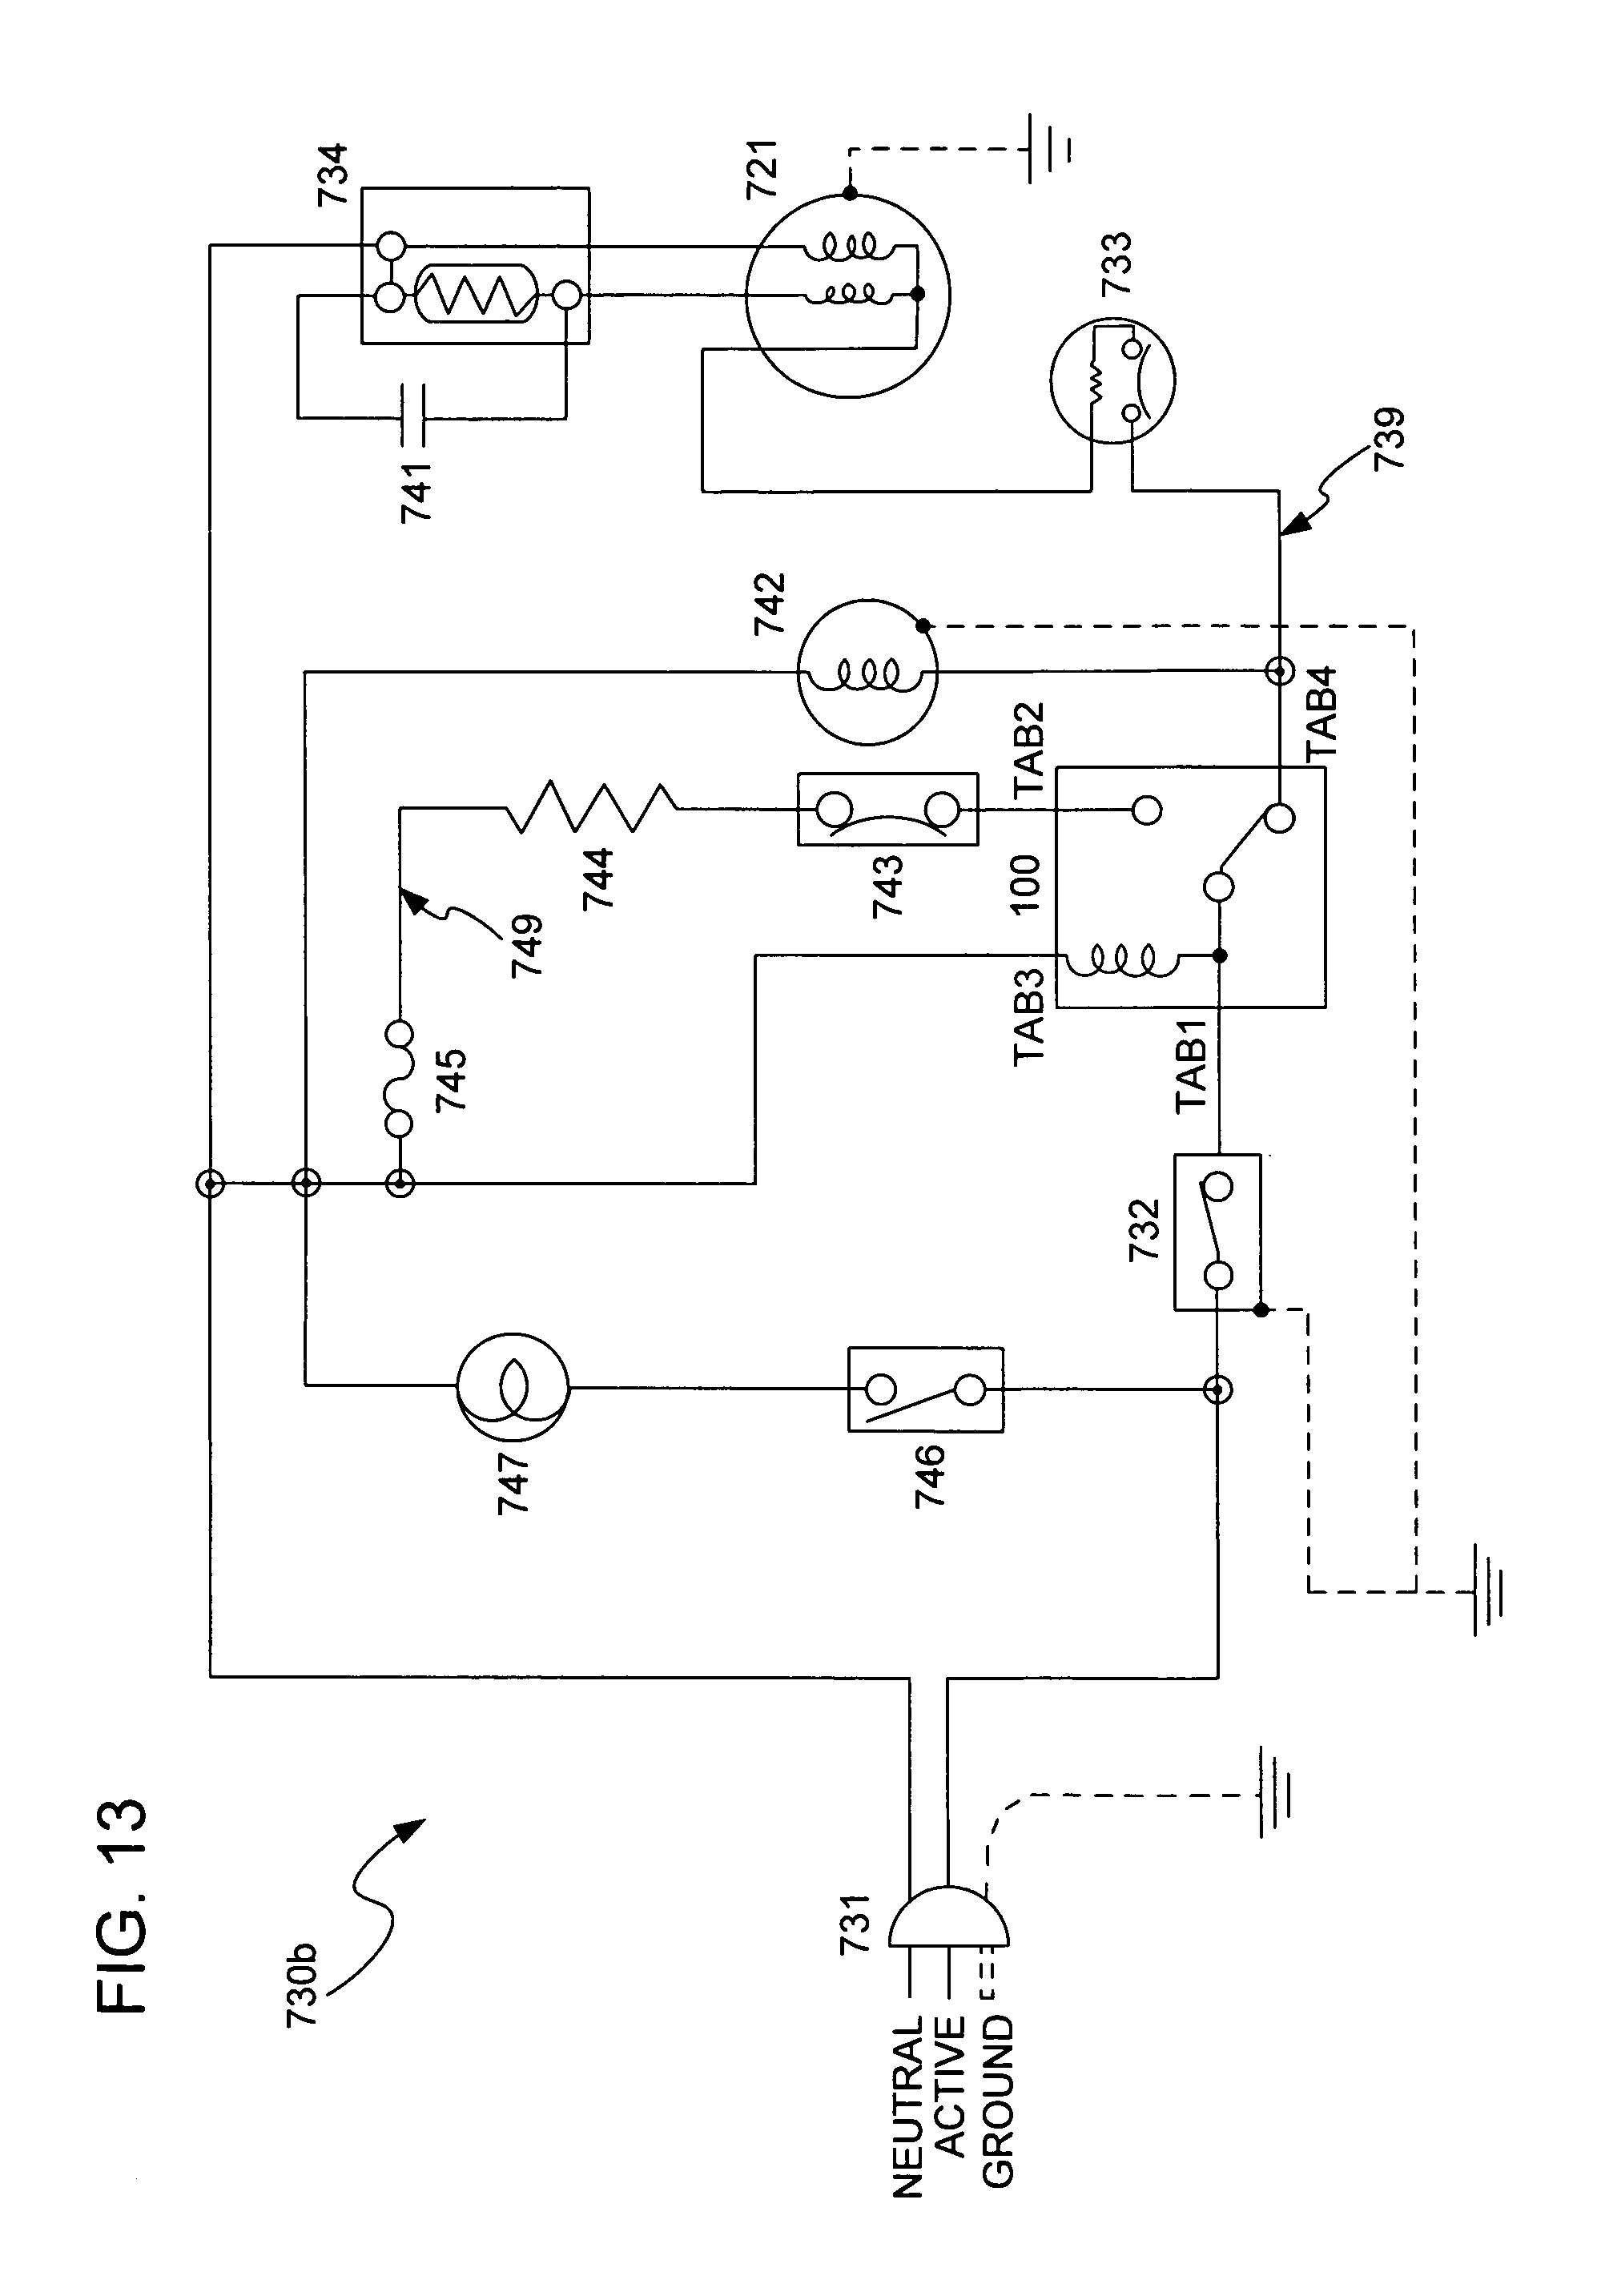 precision defrost timer wiring diagram lovely defrost clock wiring diagram plete wiring diagrams